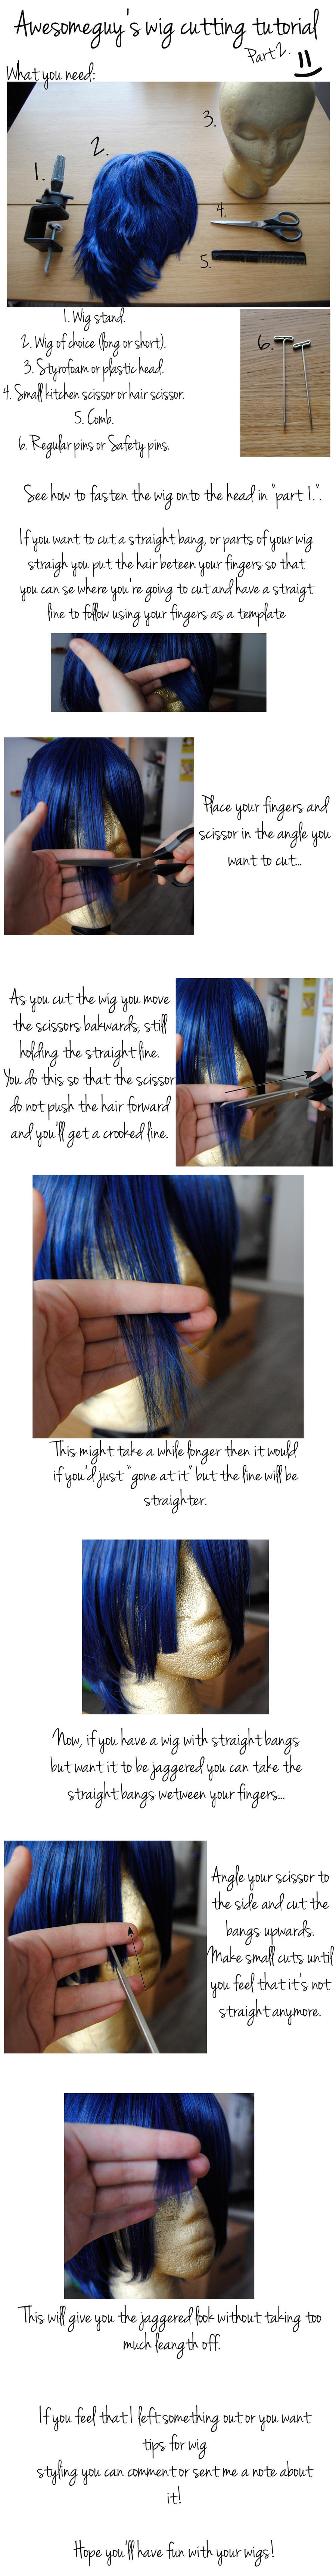 Awesomeguy's Wig Cutting Tutorial Part 2